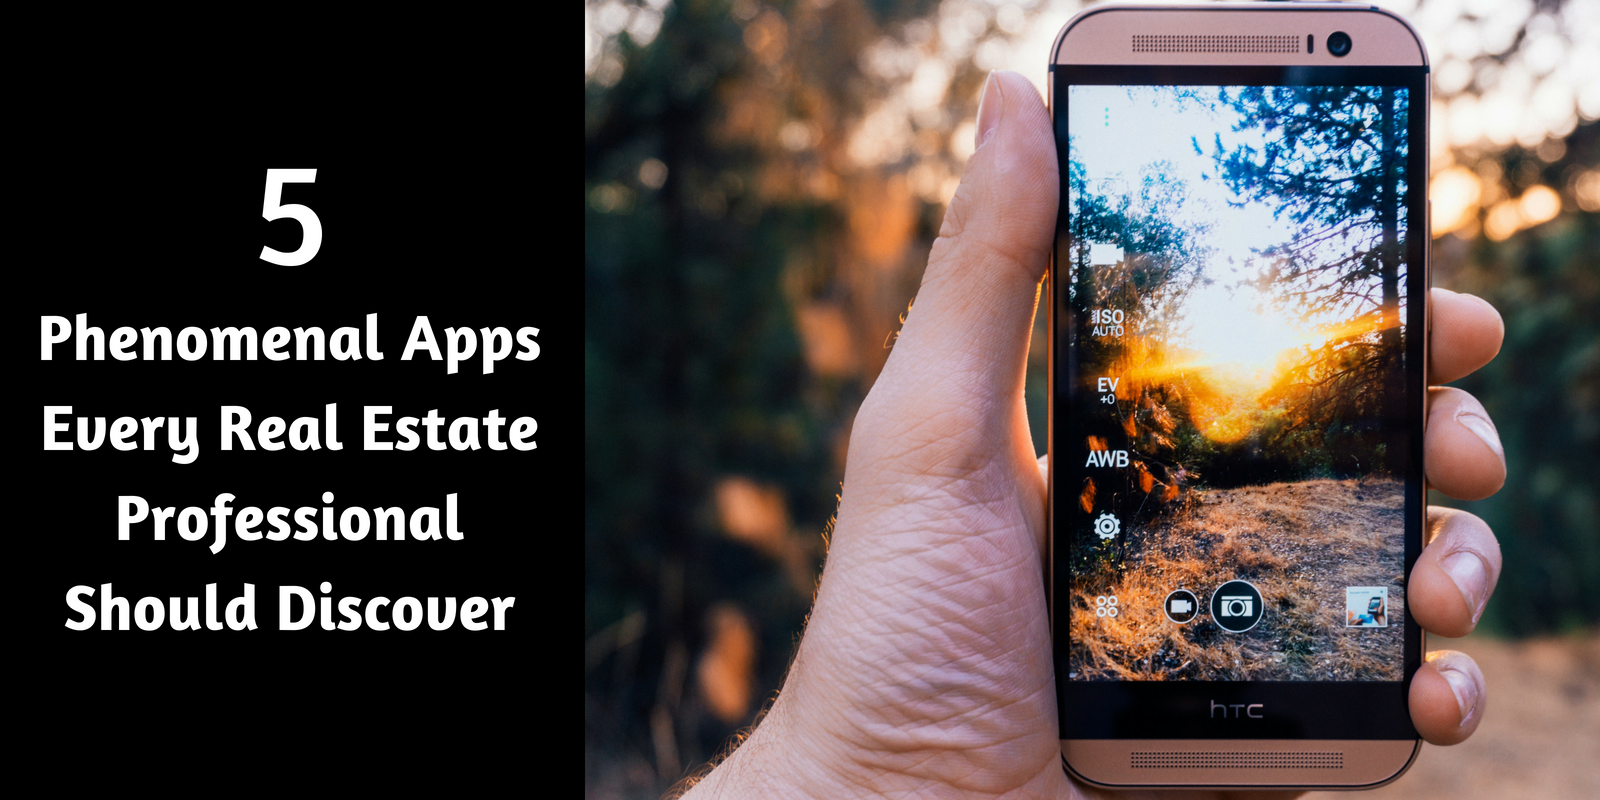 5 Phenomenal Apps Every Real Estate Professional Should Discover